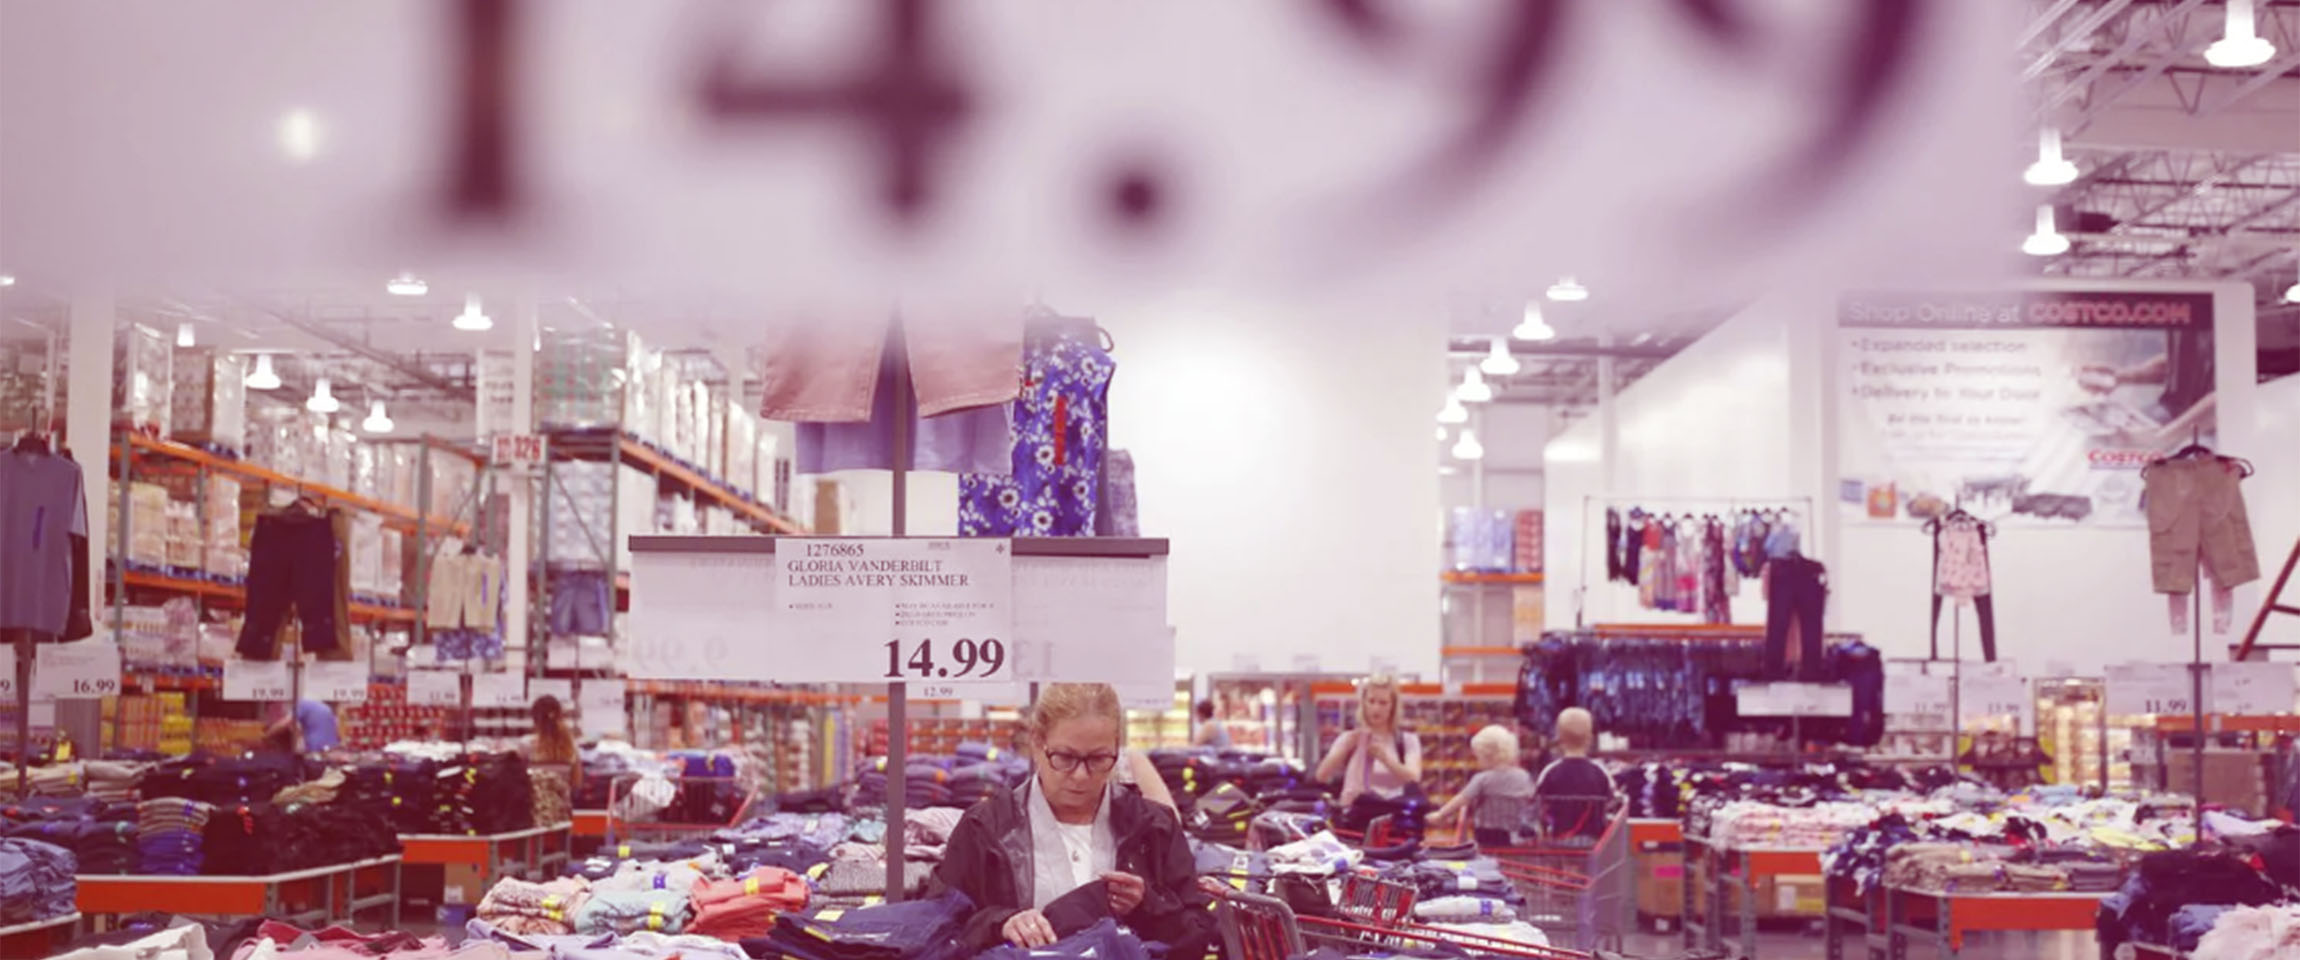 Costco Quietly Becomes a Destination for Clothes